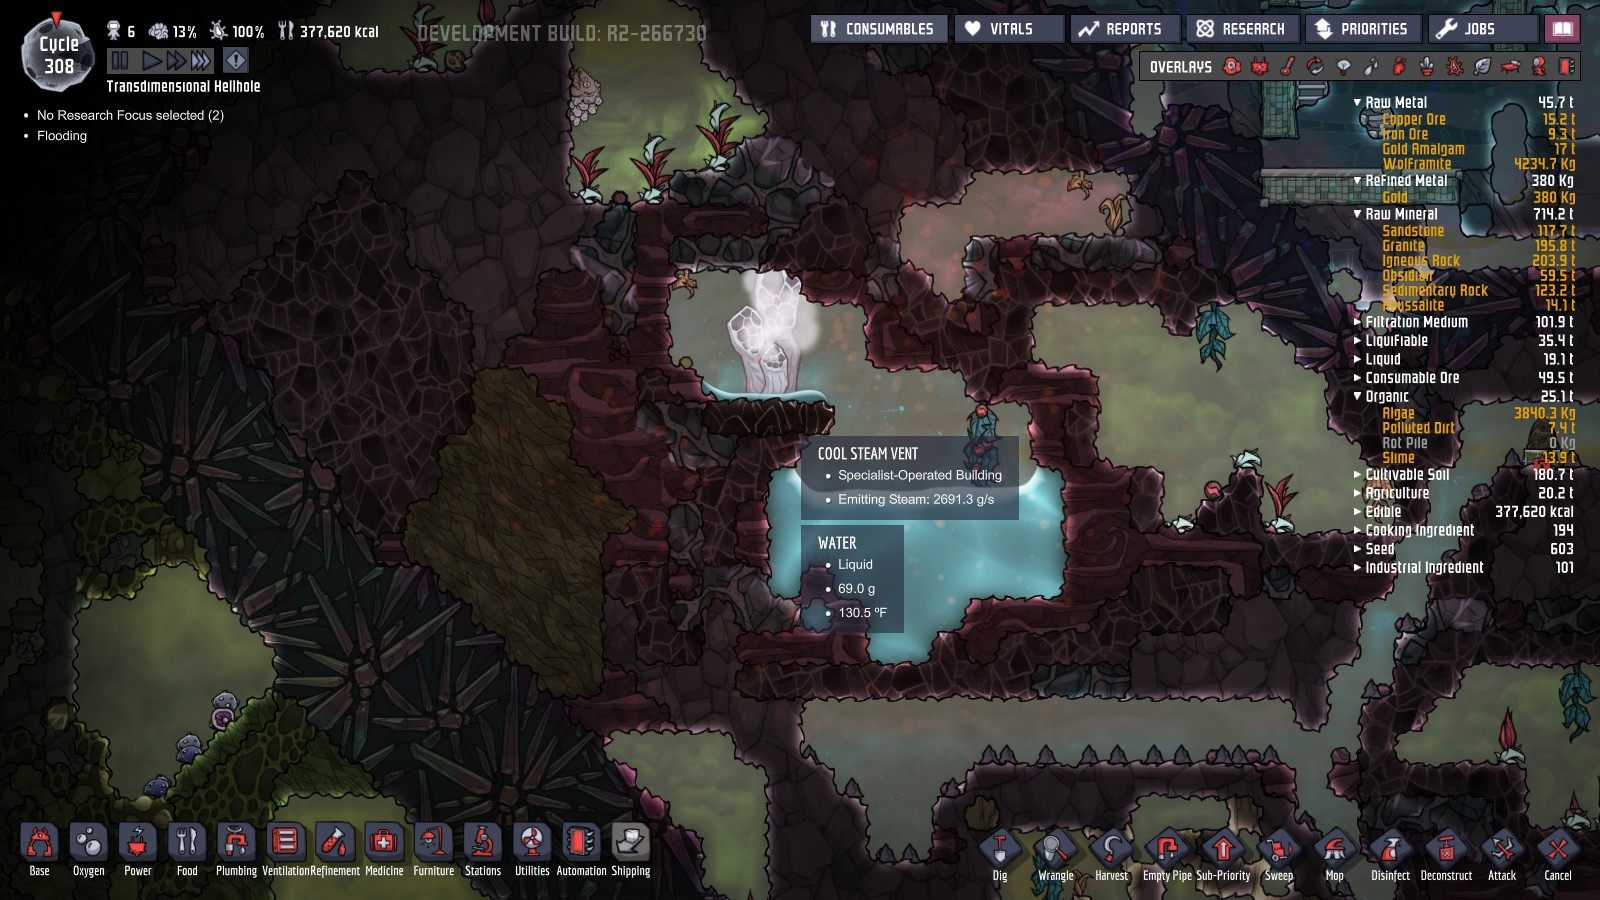 Cool Steam Vent And Steam Vent Mislabeled - Oxygen Not Included